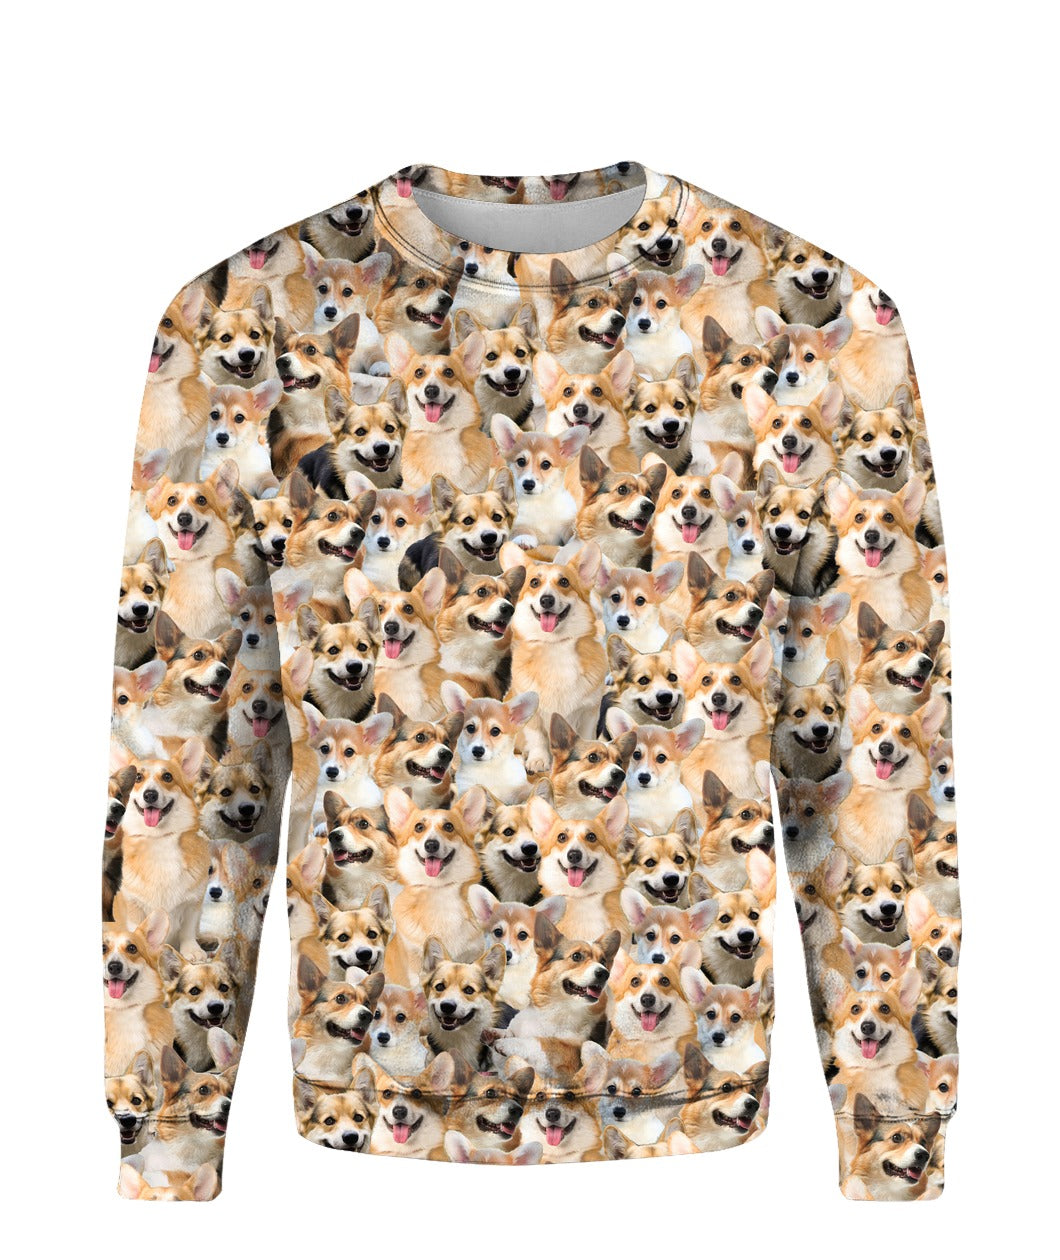 Welsh Corgi - Full Face - Premium Sweatshirt